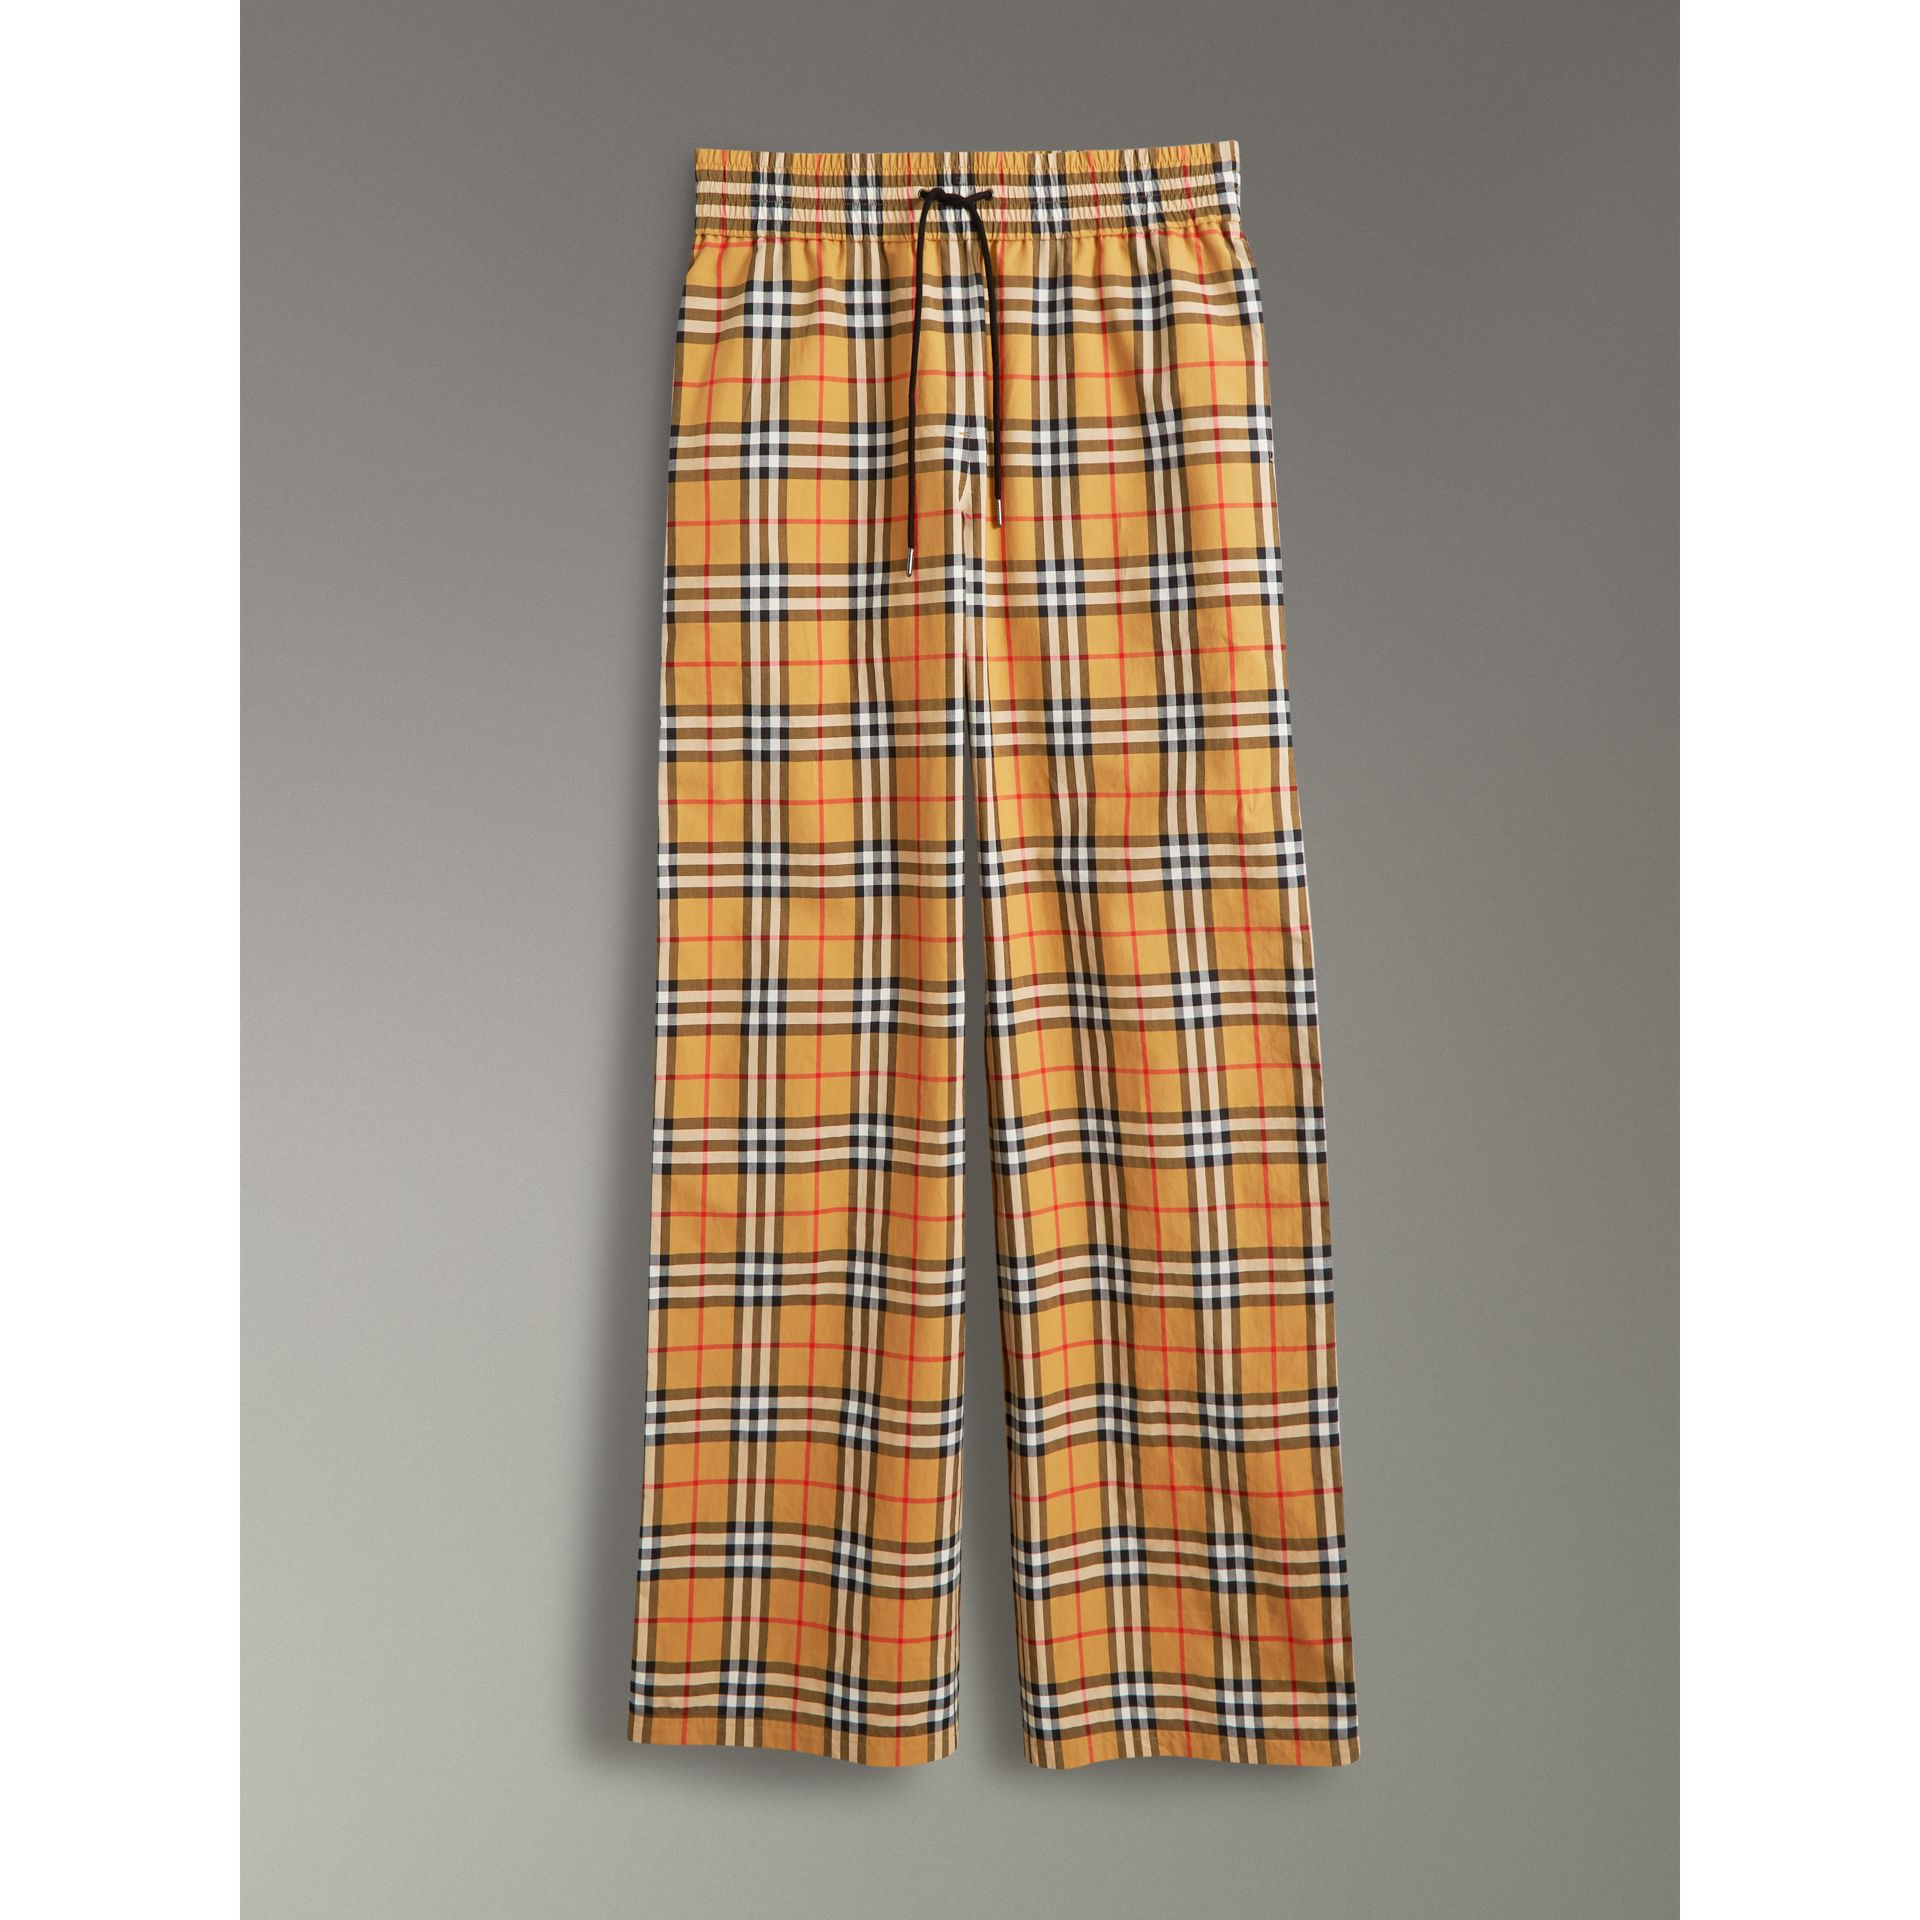 Pantalon à motif Vintage check avec cordon de serrage (Jaune Antique) - Femme | Burberry - photo de la galerie 3